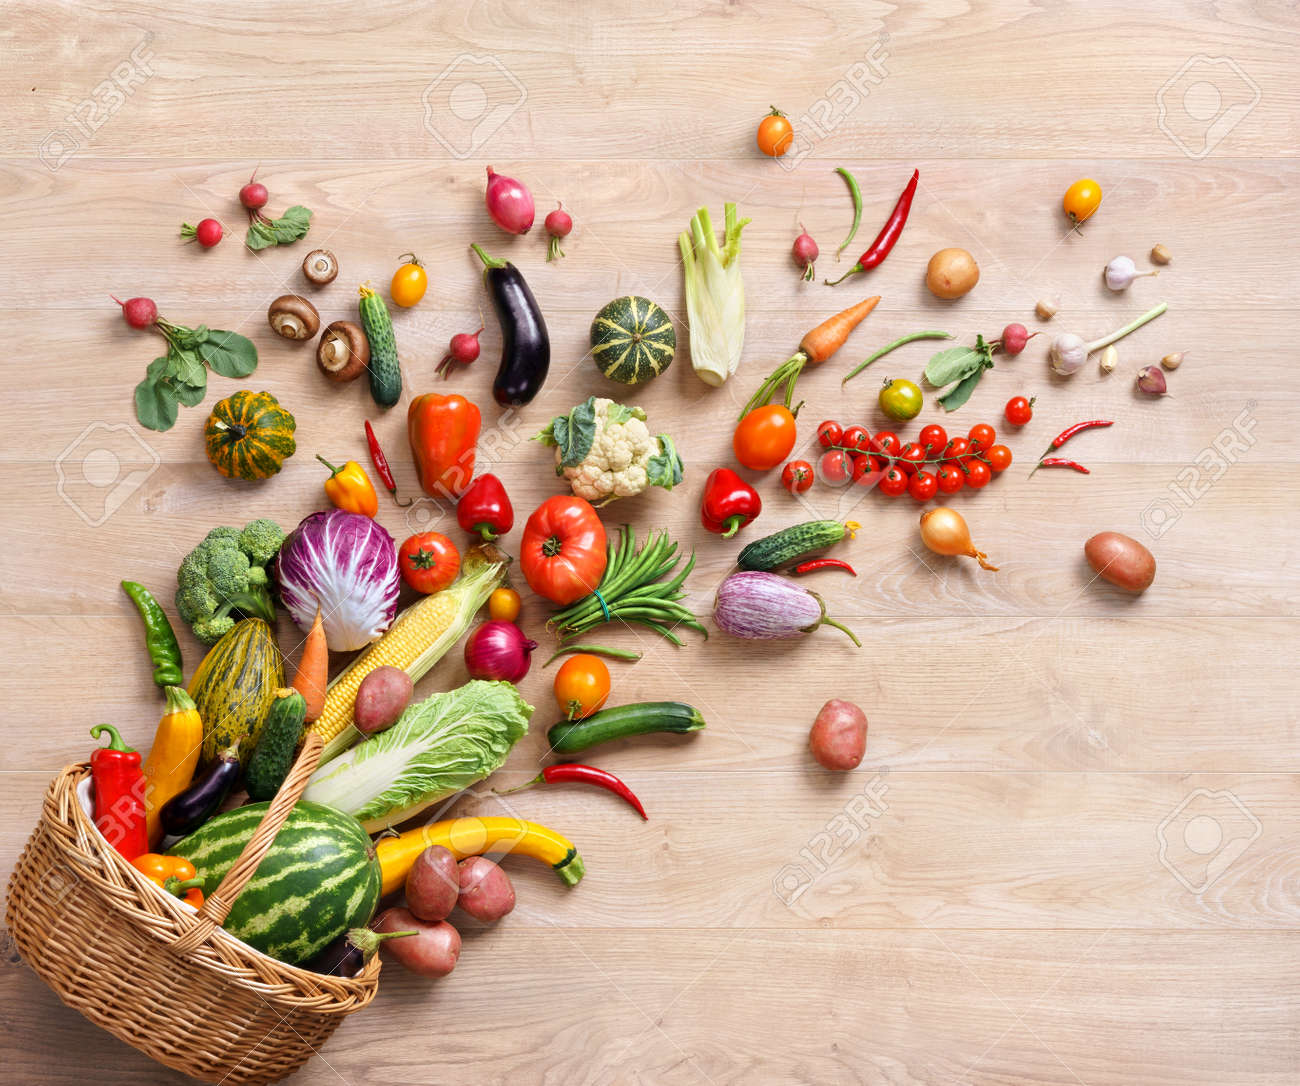 Healthy food background. studio photography of different fruits and vegetables on wooden table Stock Photo - 52849018